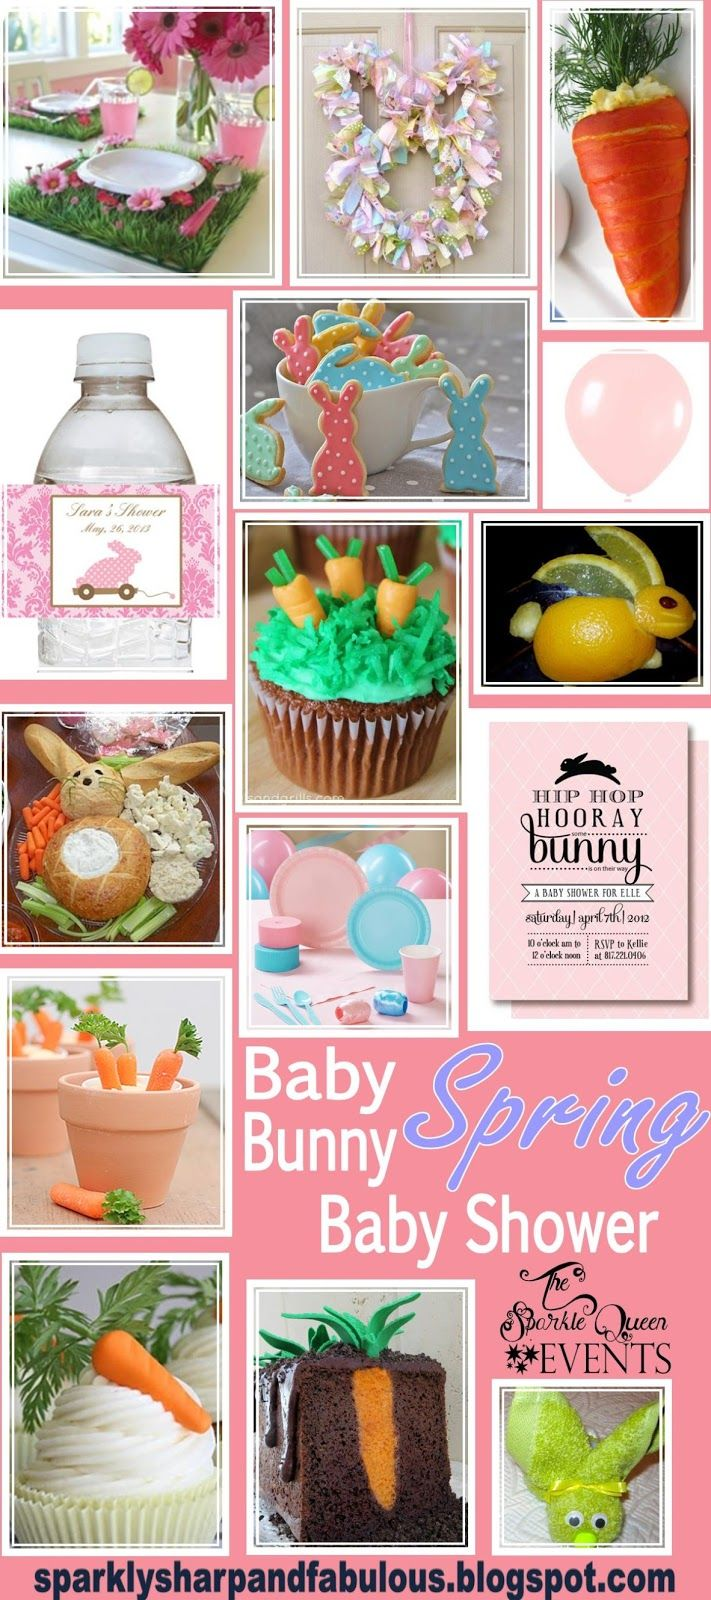 Baby Bunny {SPRING} Baby Shower - a complete idea board. Use all of those clearance Easter goodies for a great party!